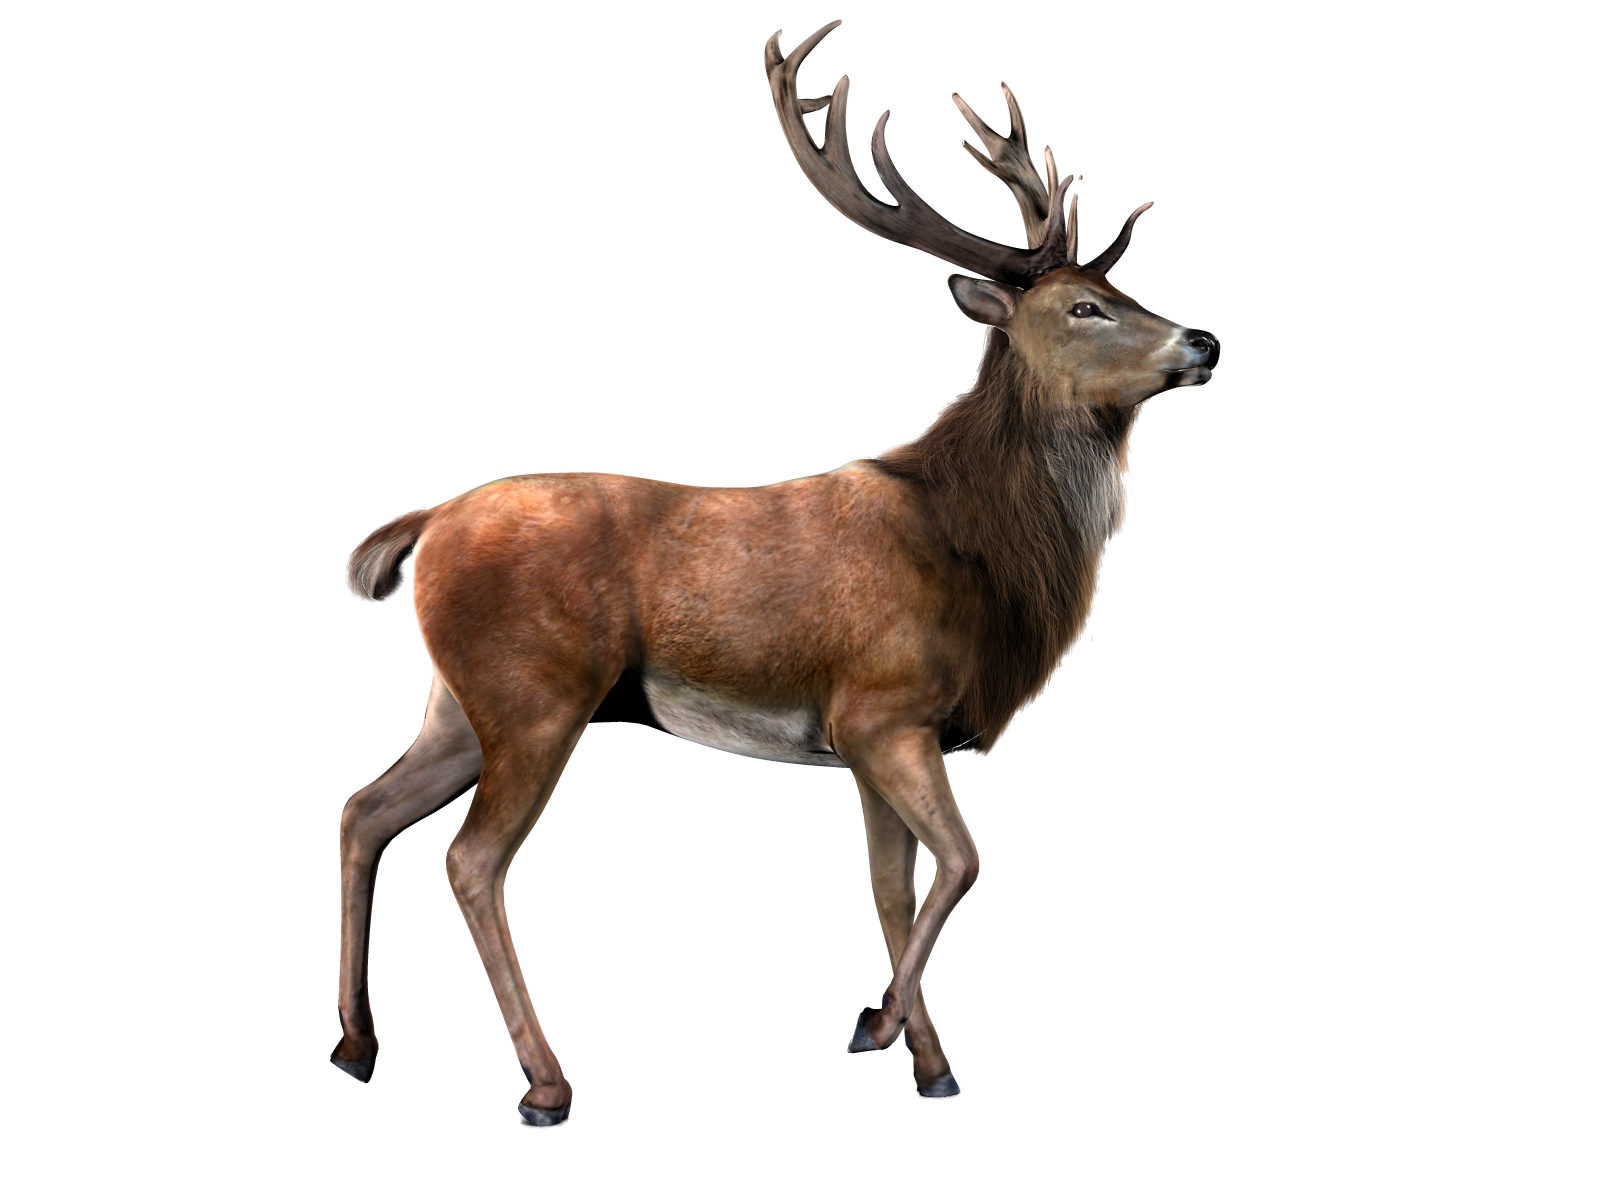 Characteristics of on emaze. Deer clipart file